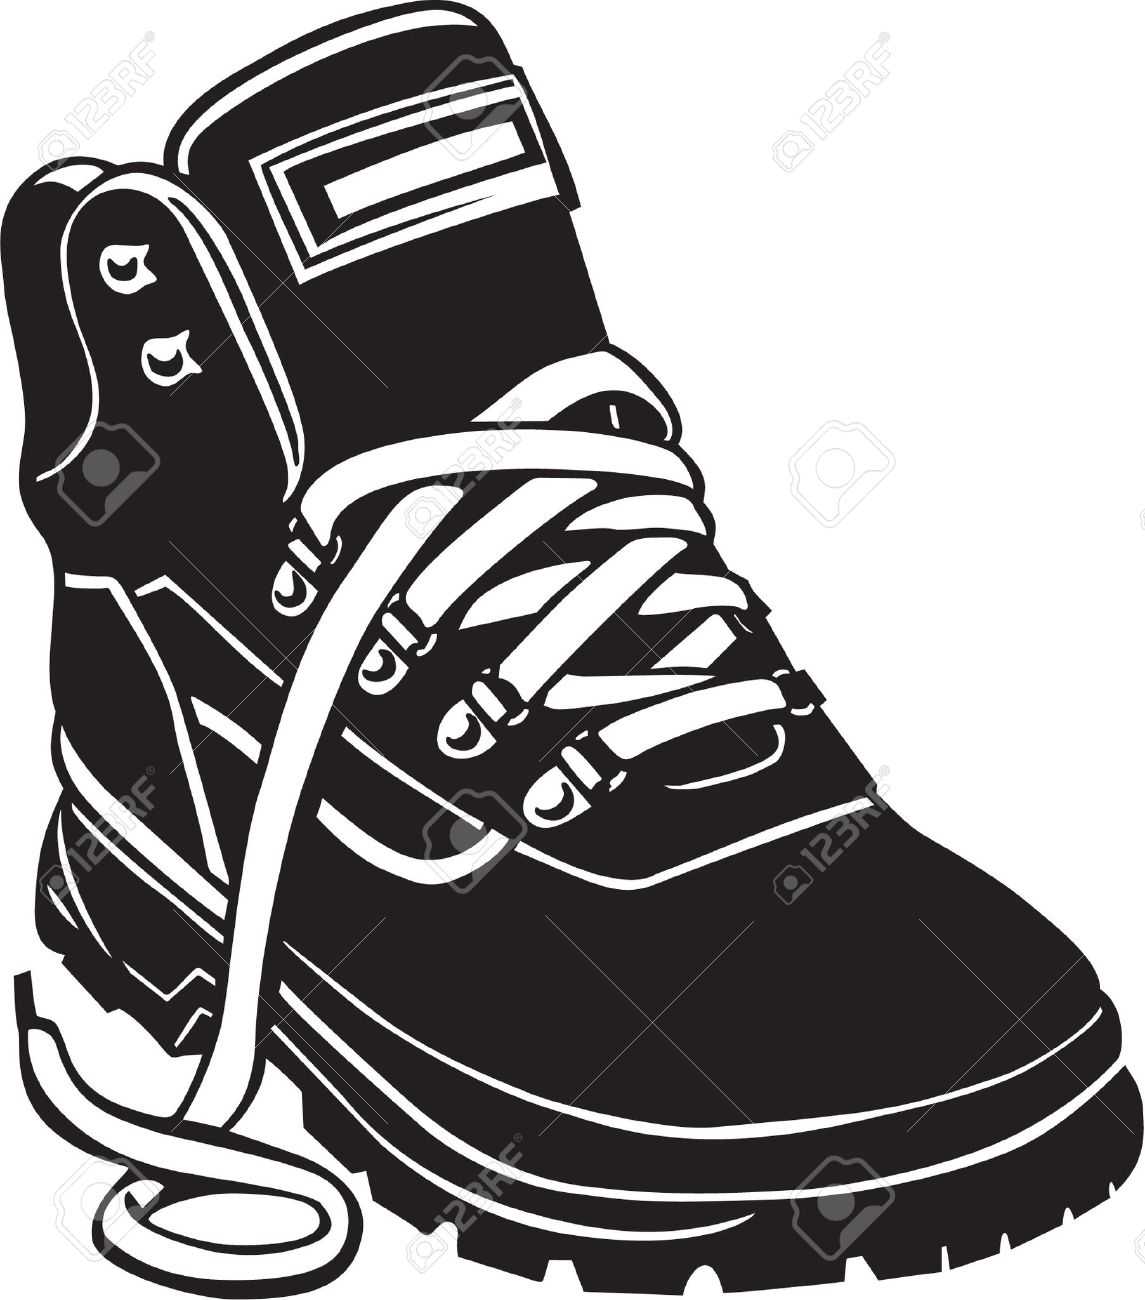 Hiking Boot Vinyl Ready Royalty Free Cliparts, Vectors, And Stock.